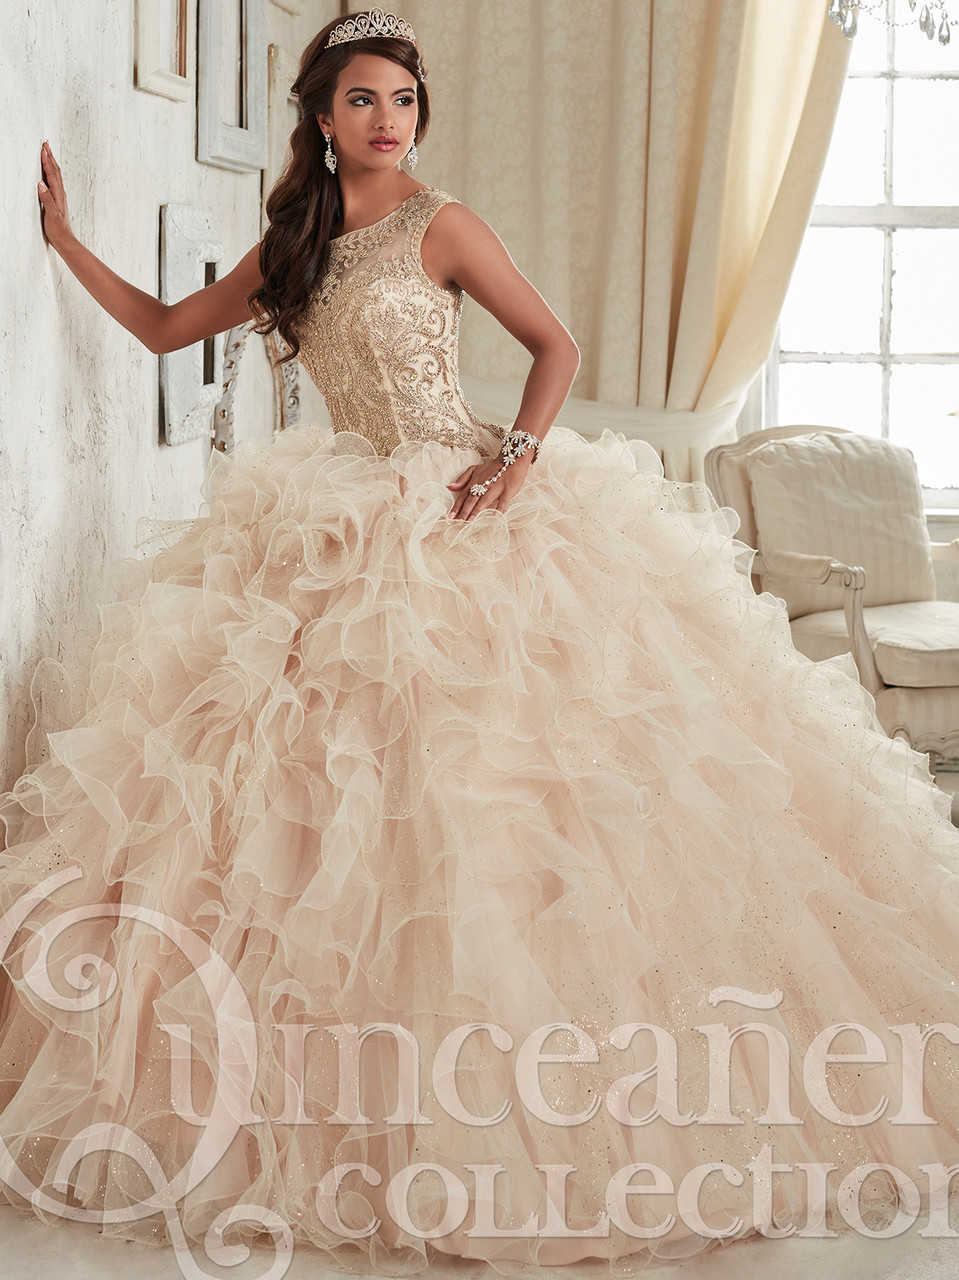 Sparkle Tulle Ruffled Ball Gown Tiffany Quinceanera Dress 26835